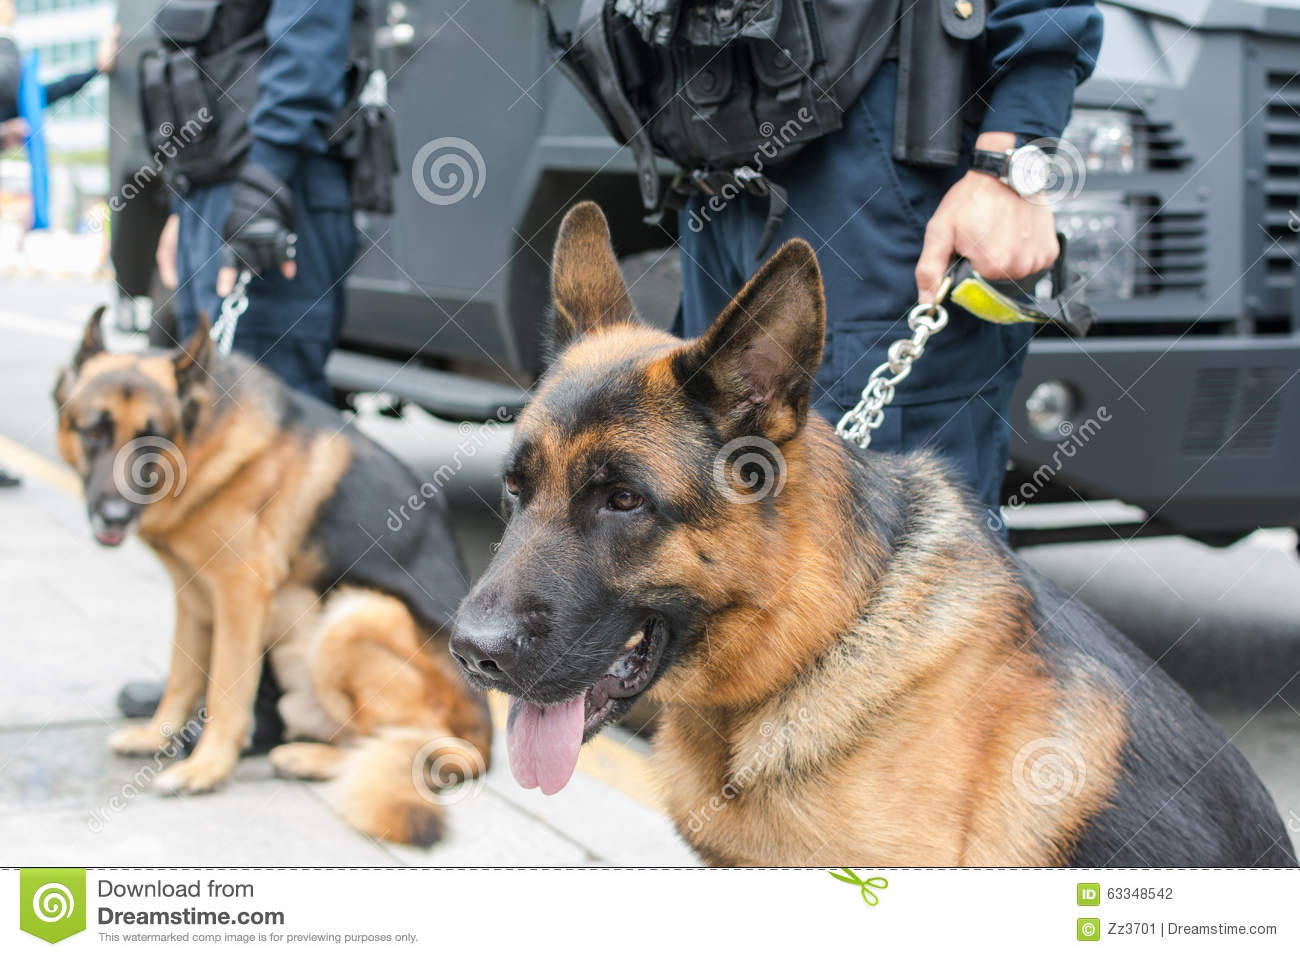 how to become a police dog trainer in canada